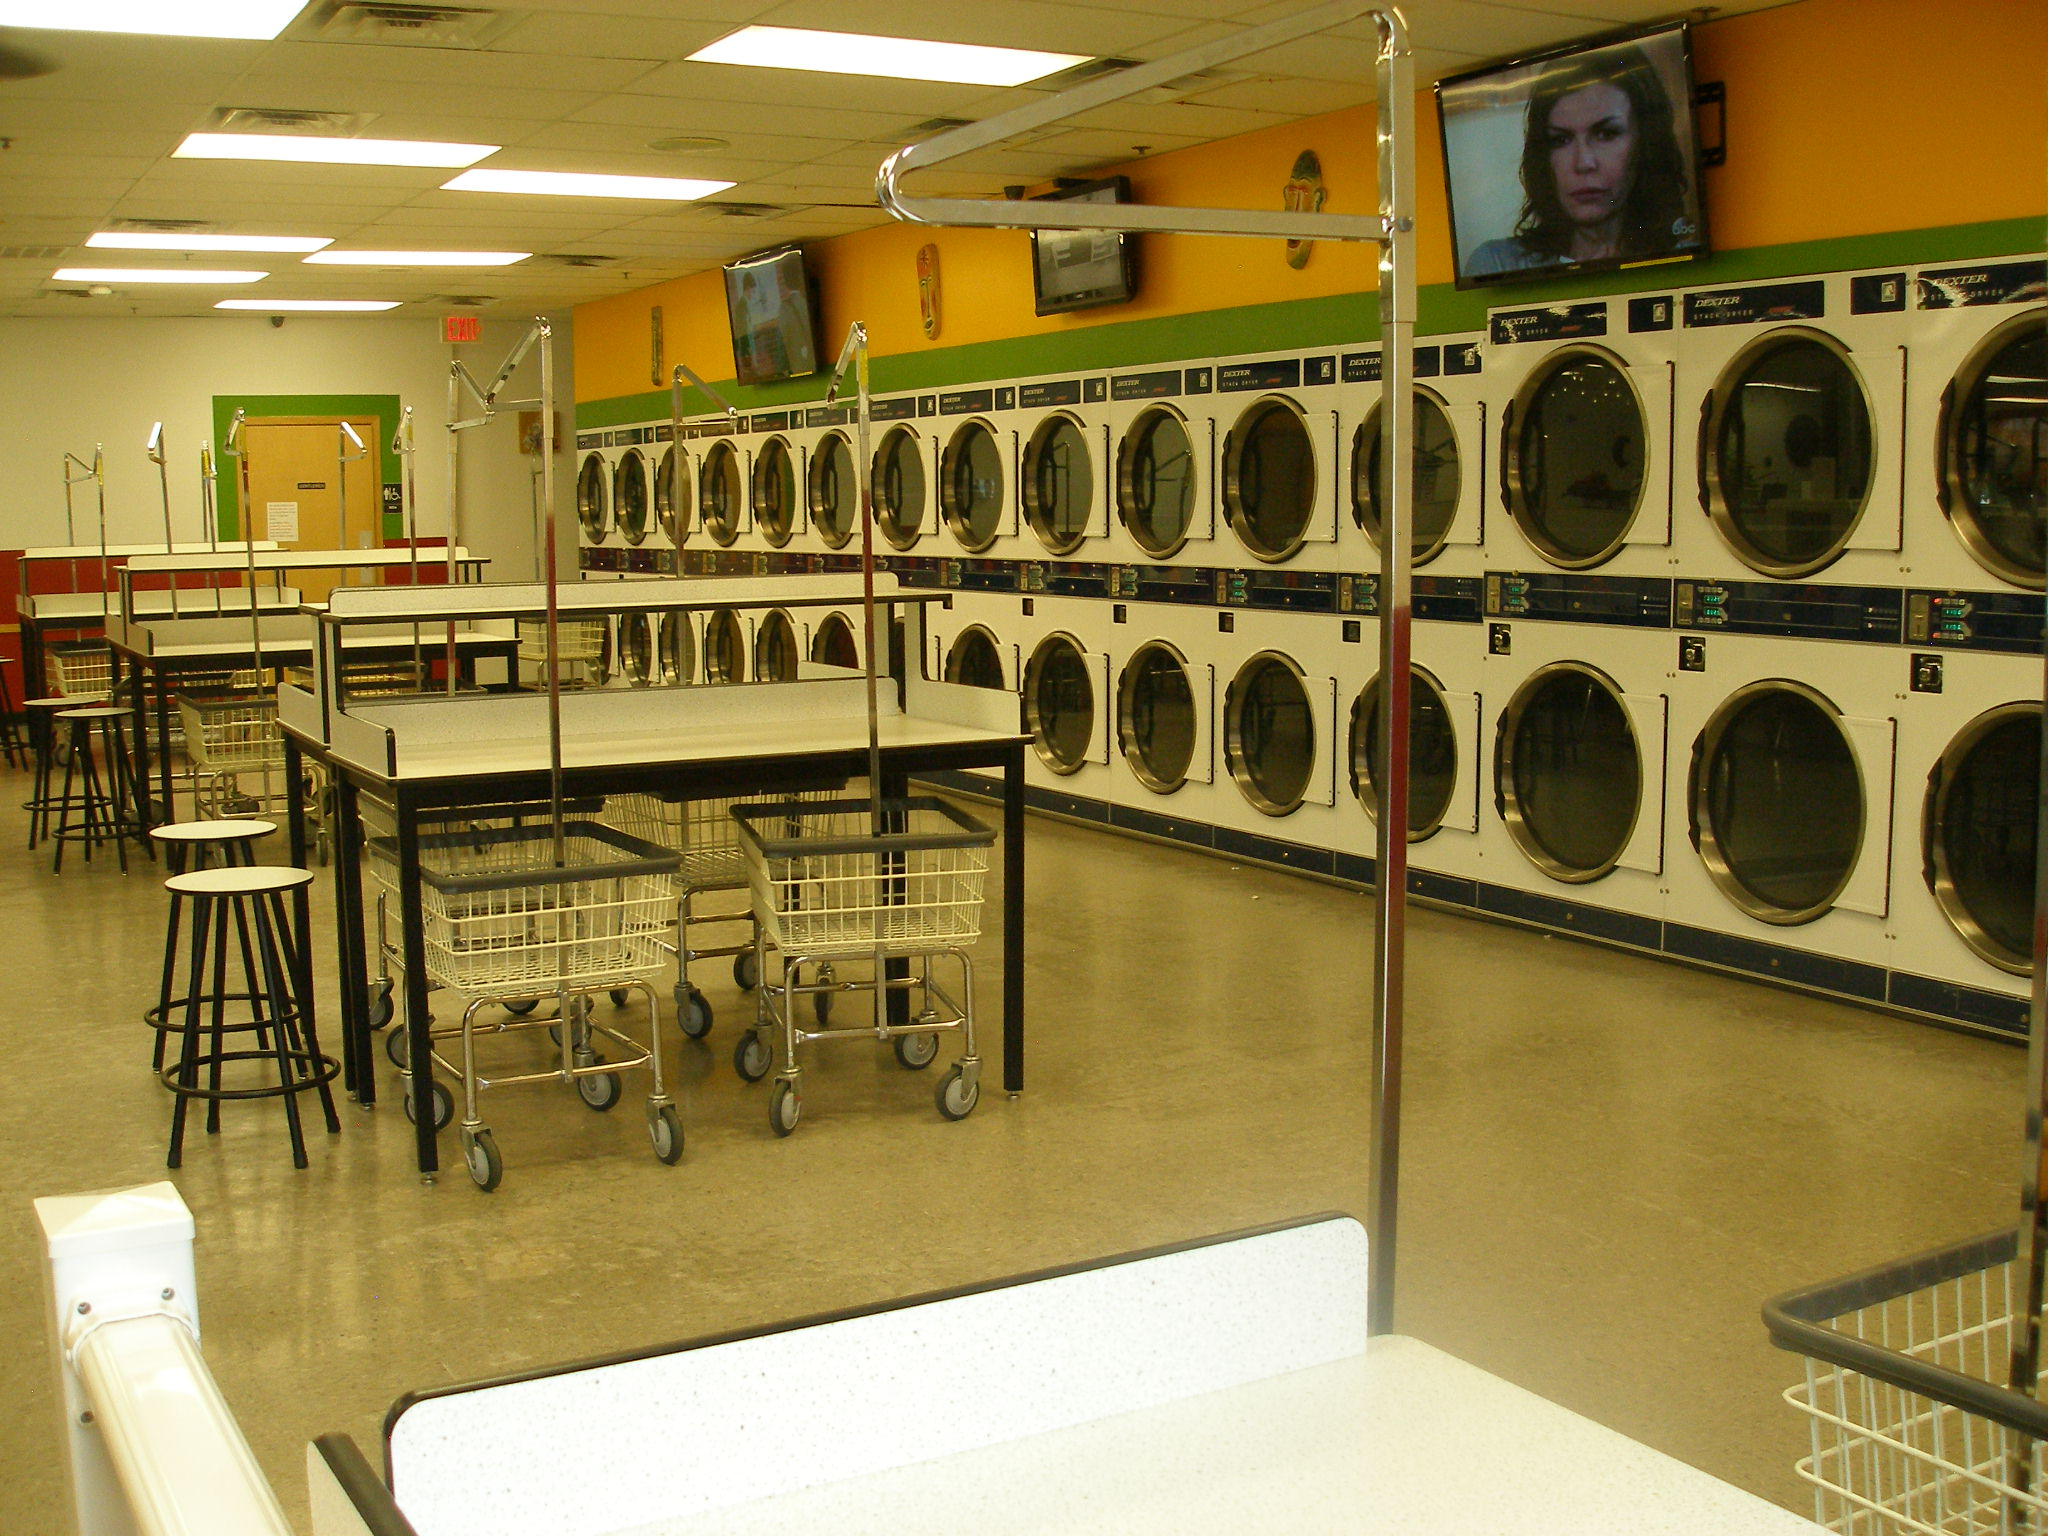 where to get coins for laundry